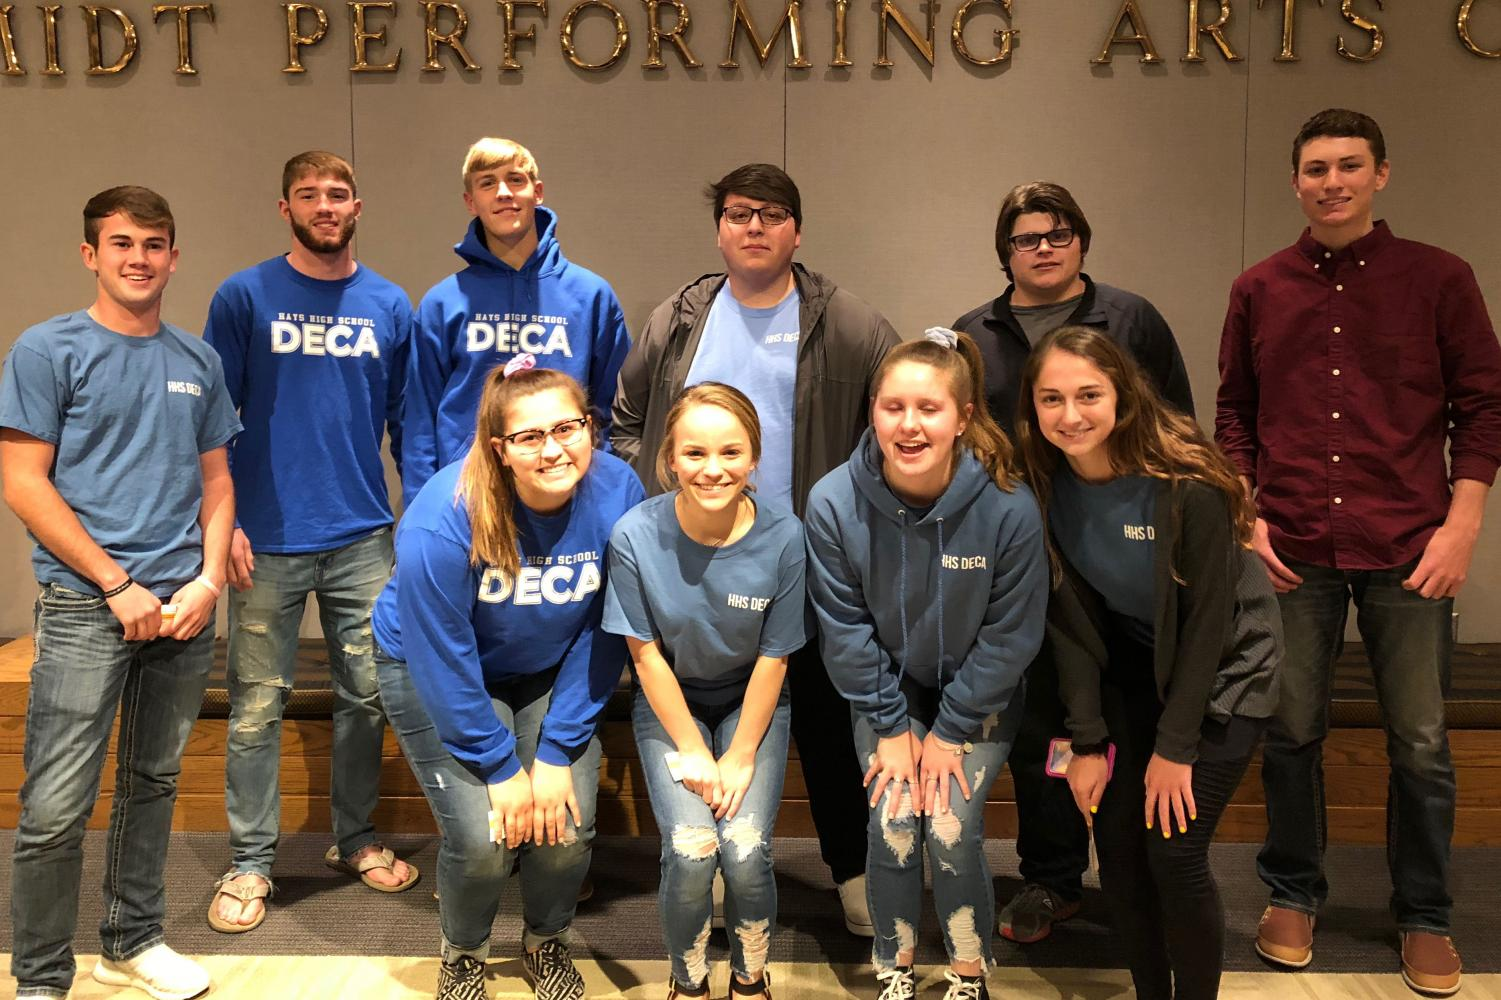 Marketing students from both the Marketing Applications class and Principles of Marketing were able to attend the Daymond John presentation on Nov. 7 at Beach Schmidt. John has a clothing line called FUBU and is currently still a shark on